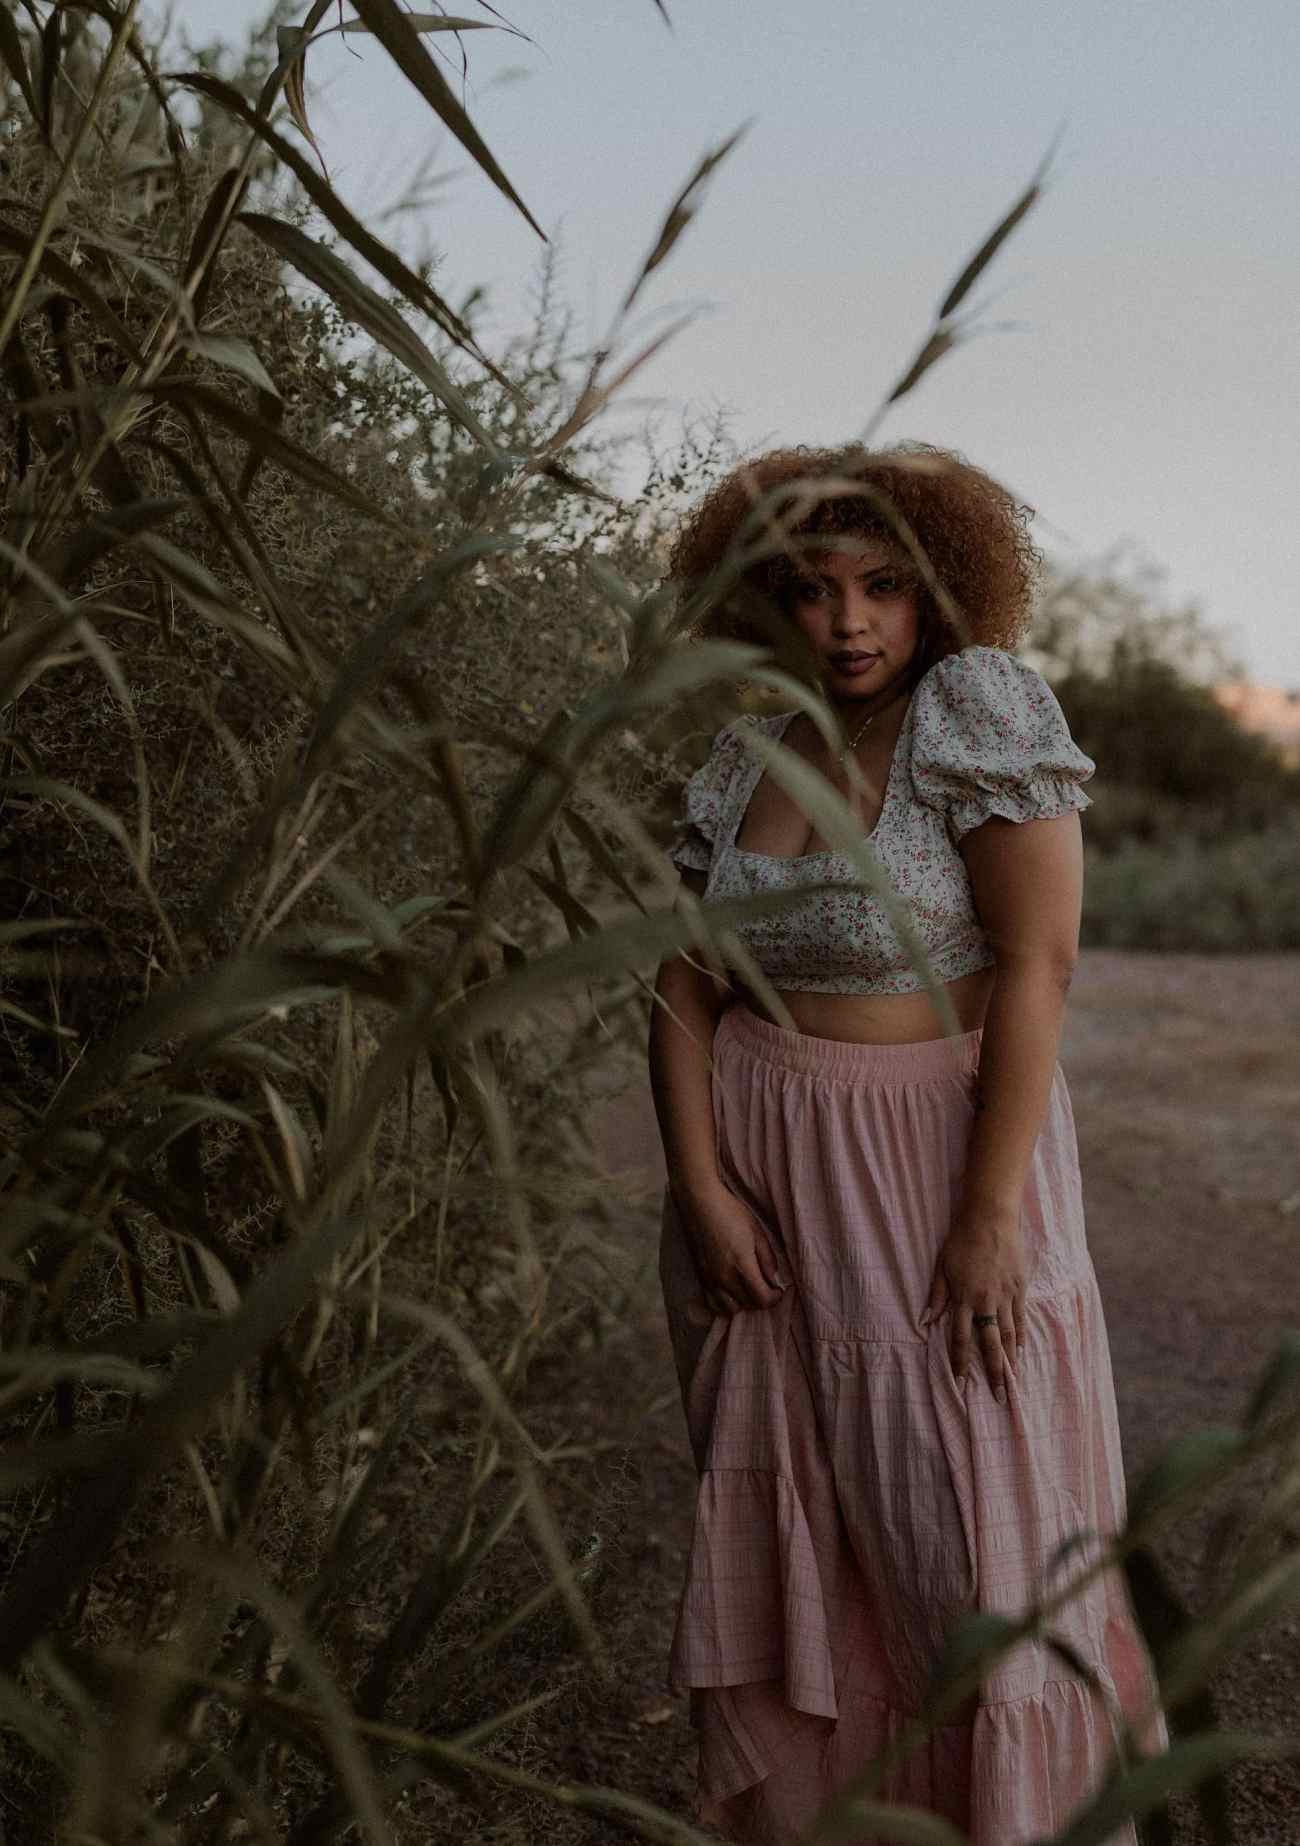 Las Vegas Wetlands Sunset portraits with BIPOC model in pink skirt